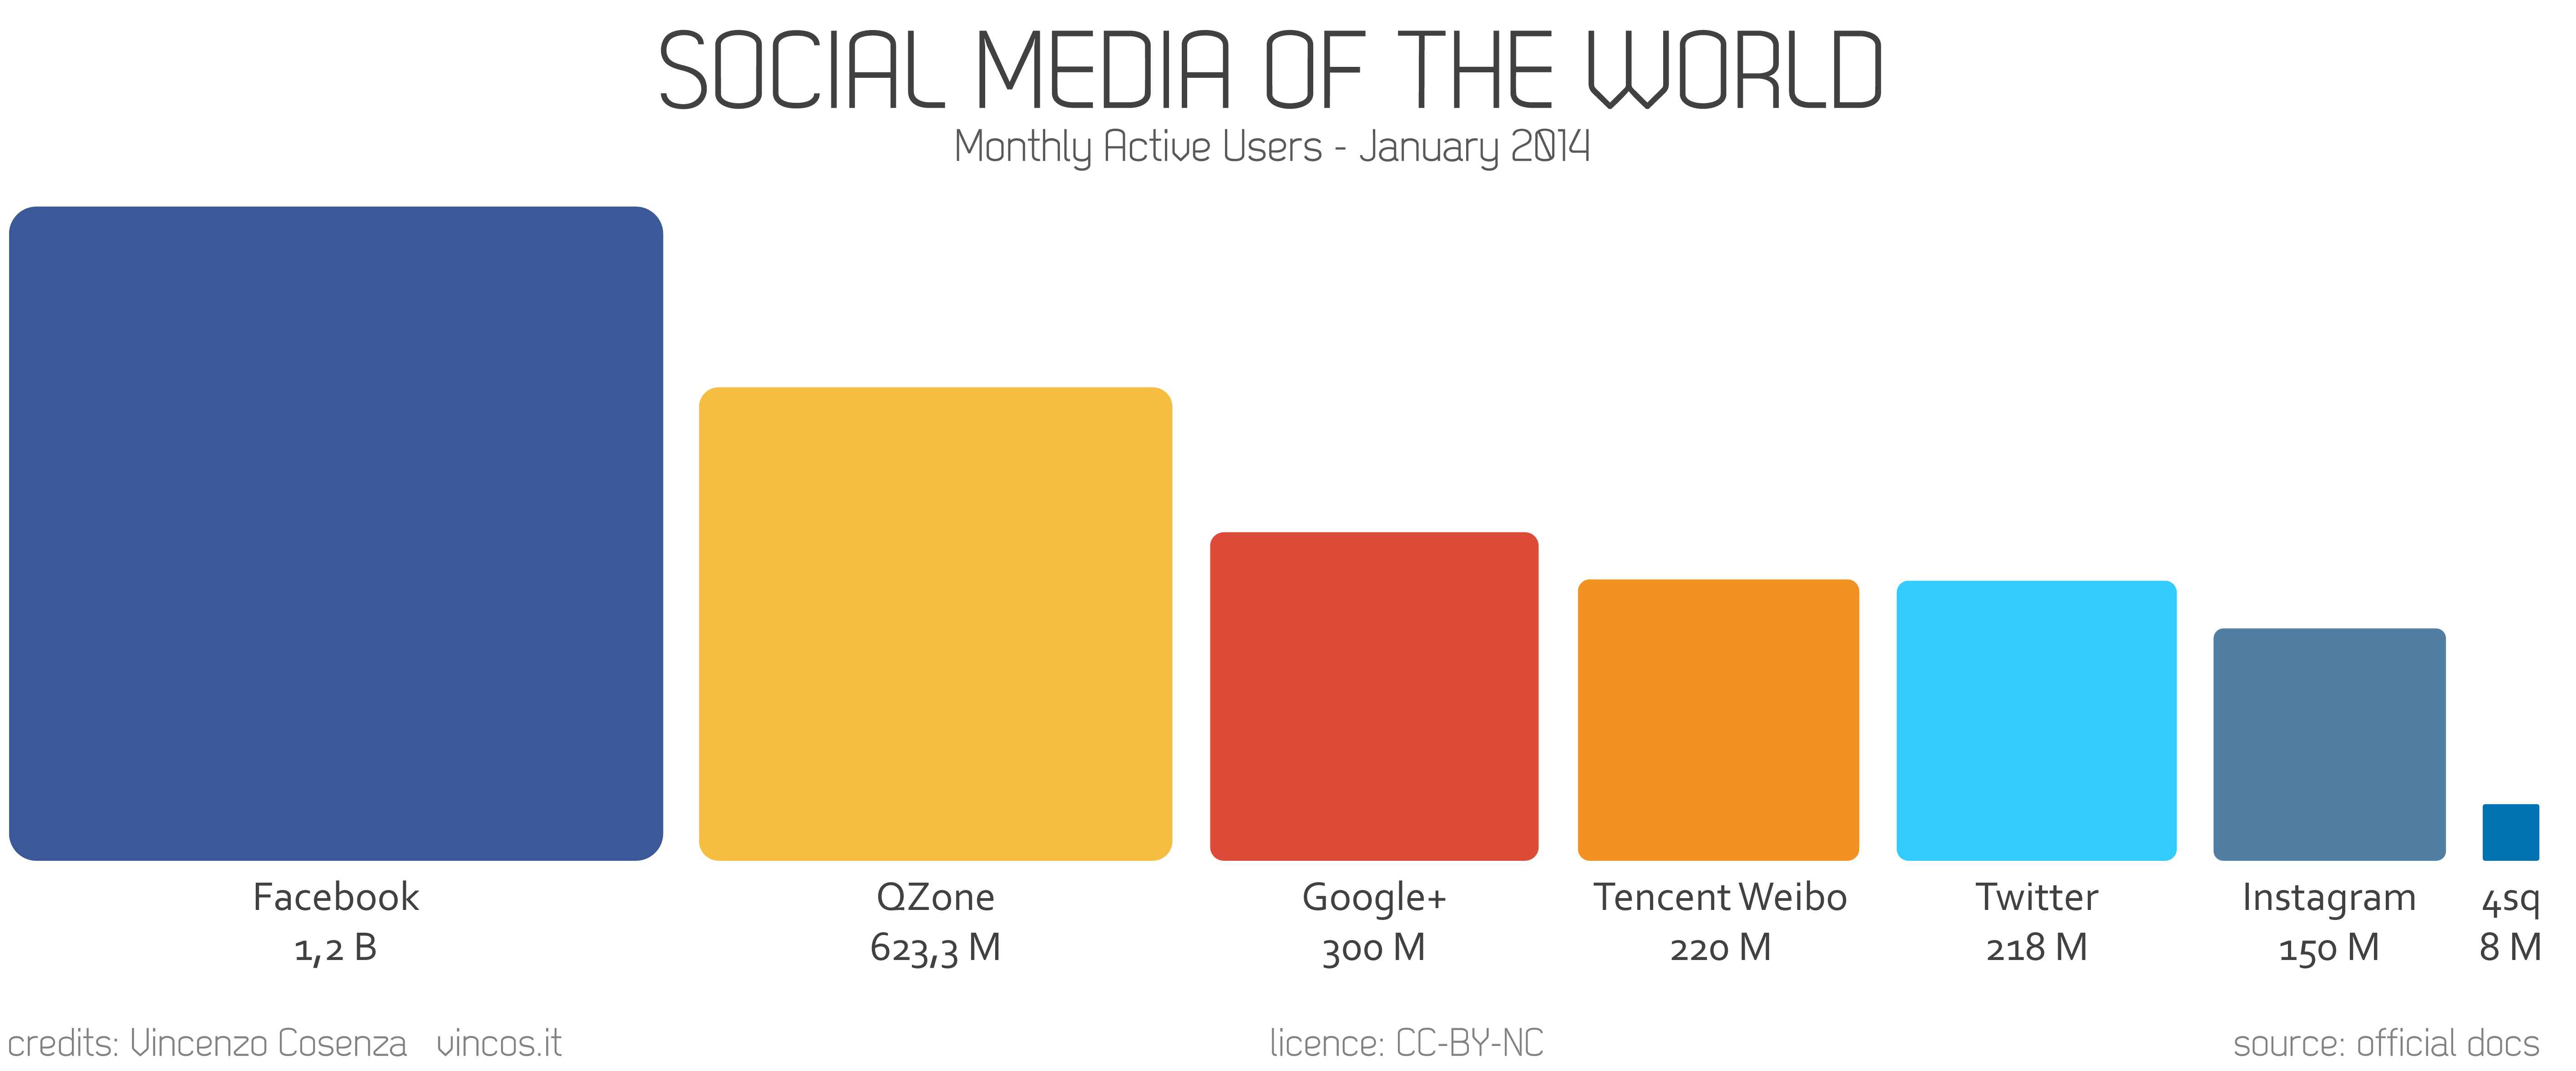 social media of the world users